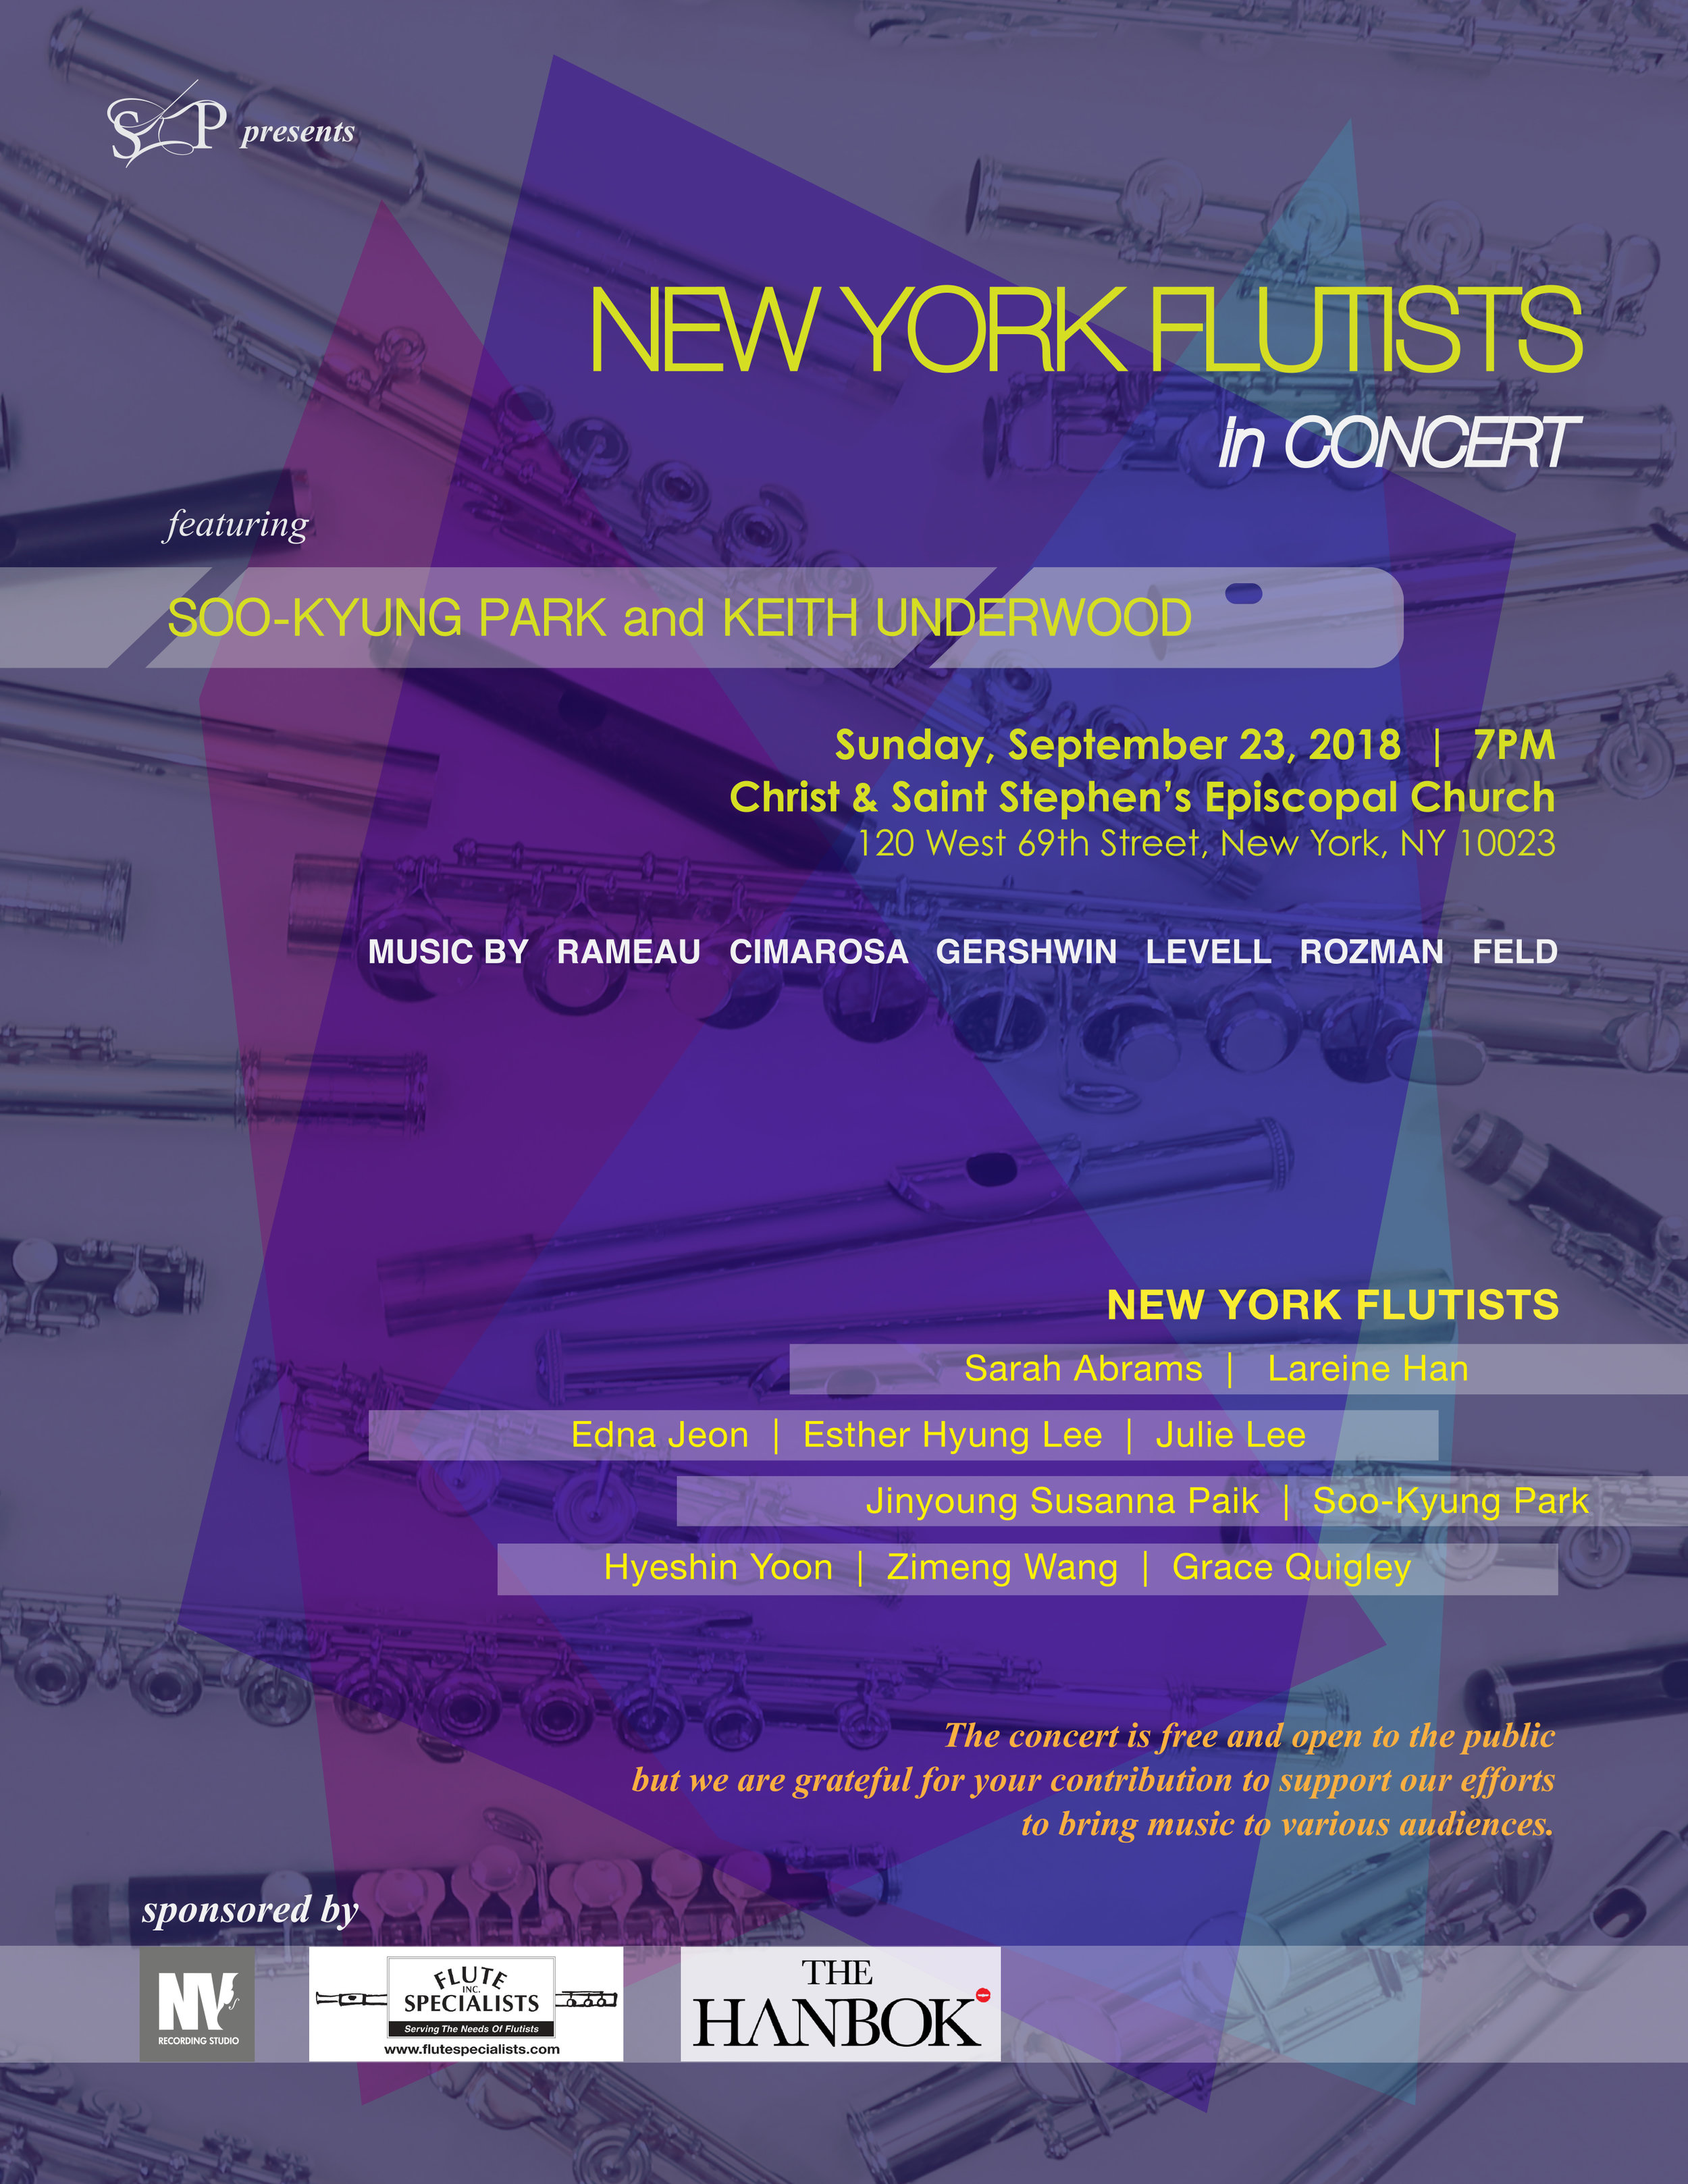 New York Flutists in Concert